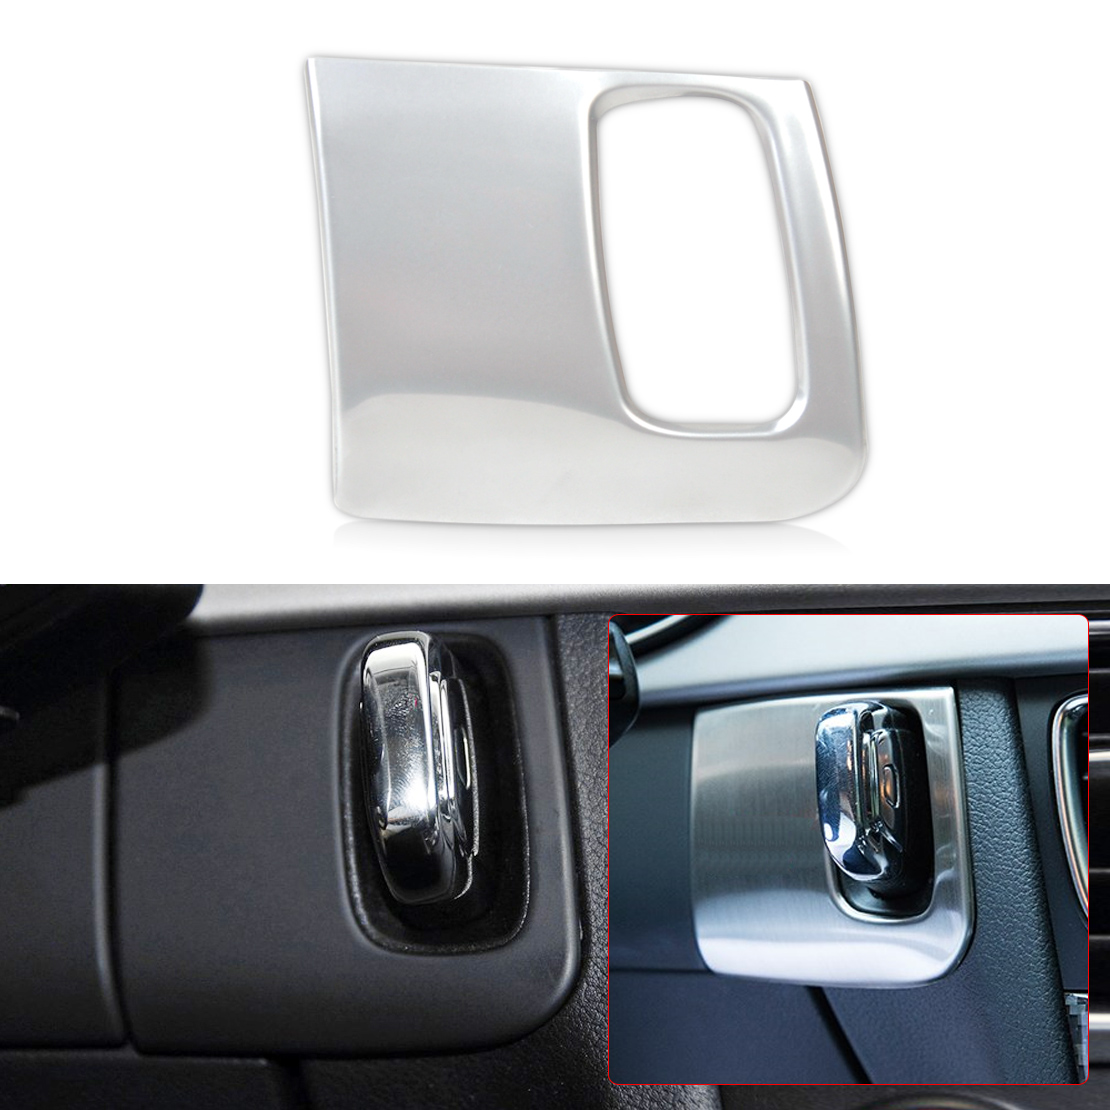 DWCX High Quality Stainless Steel Dash Lgnition Keyhole Molding Cover Trim for <font><b>Audi</b></font> <font><b>A4</b></font> A5 2009 2010 2011 2012 <font><b>2013</b></font> 2014 2015 image